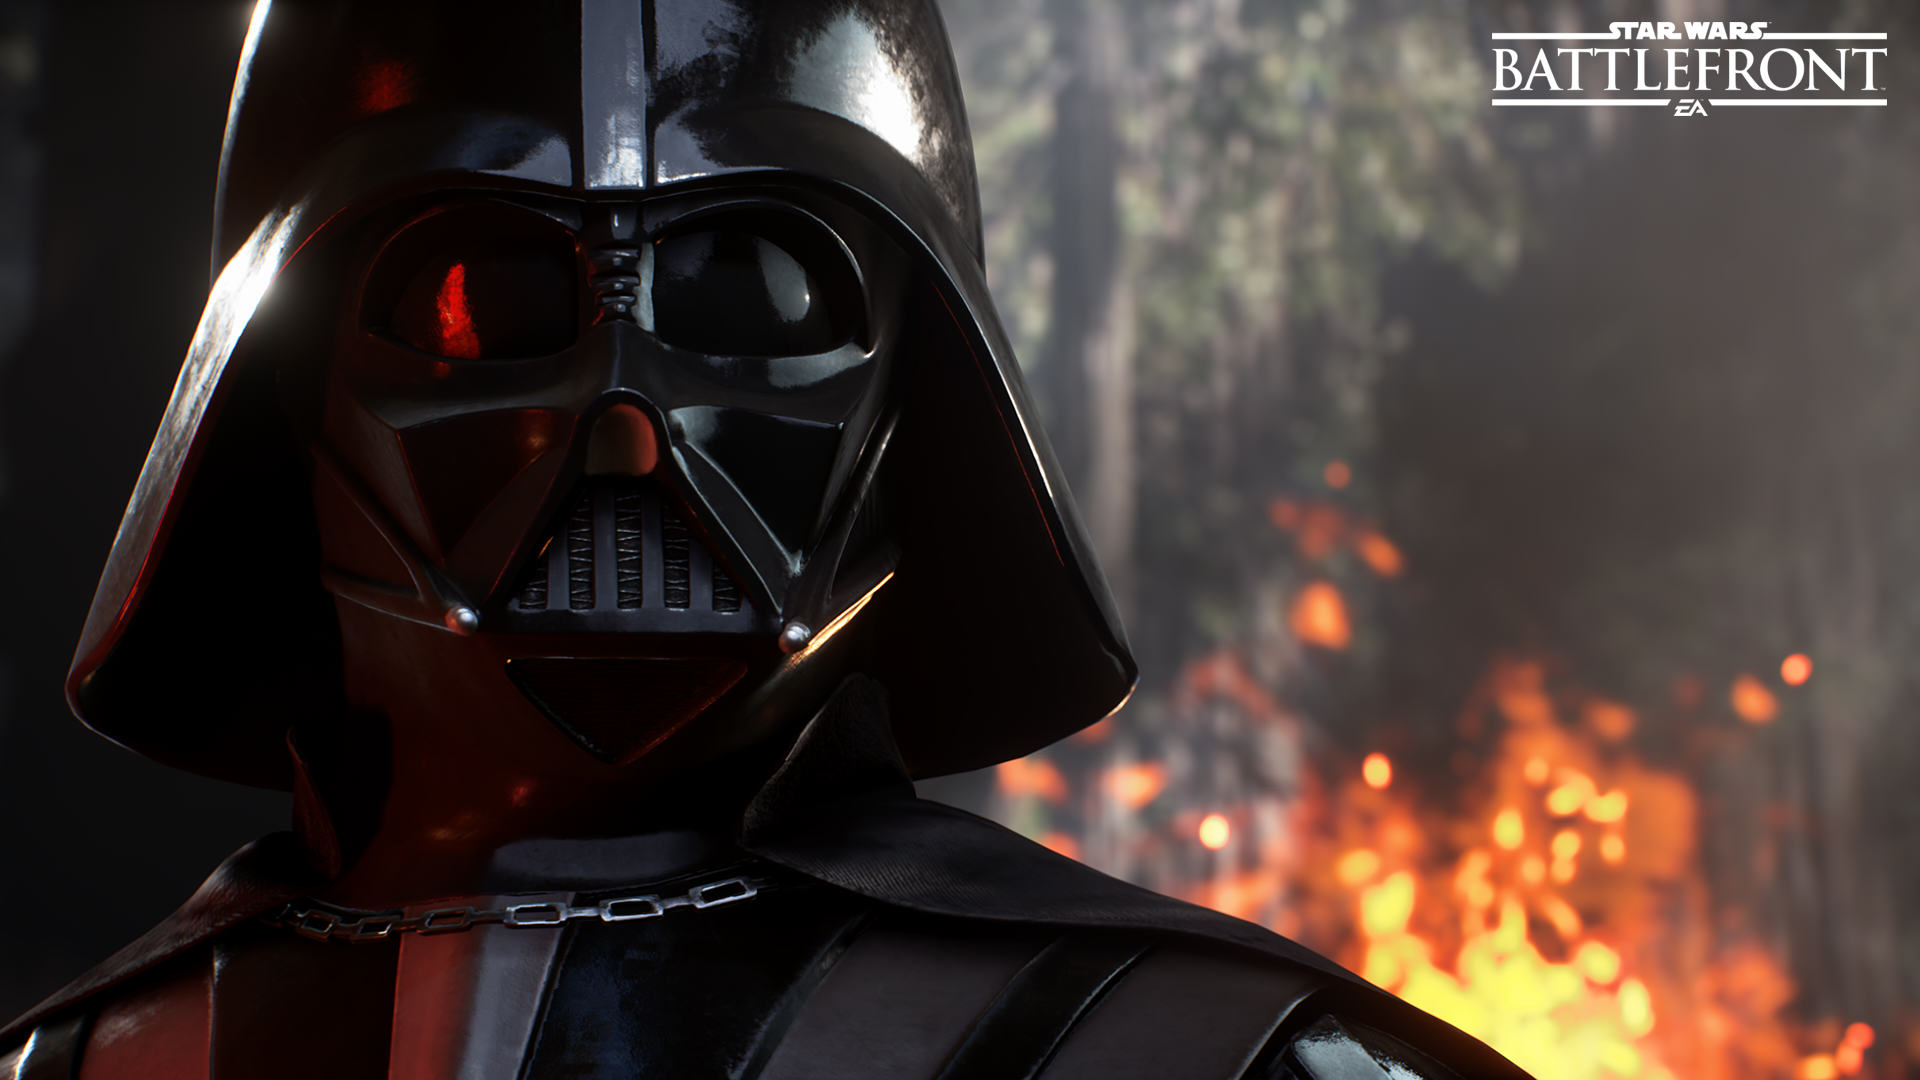 UNILAD ImzaoT7 Imgur2 Star Wars: Battlefront Looks Stunning In These Desktop Backgrounds And Images